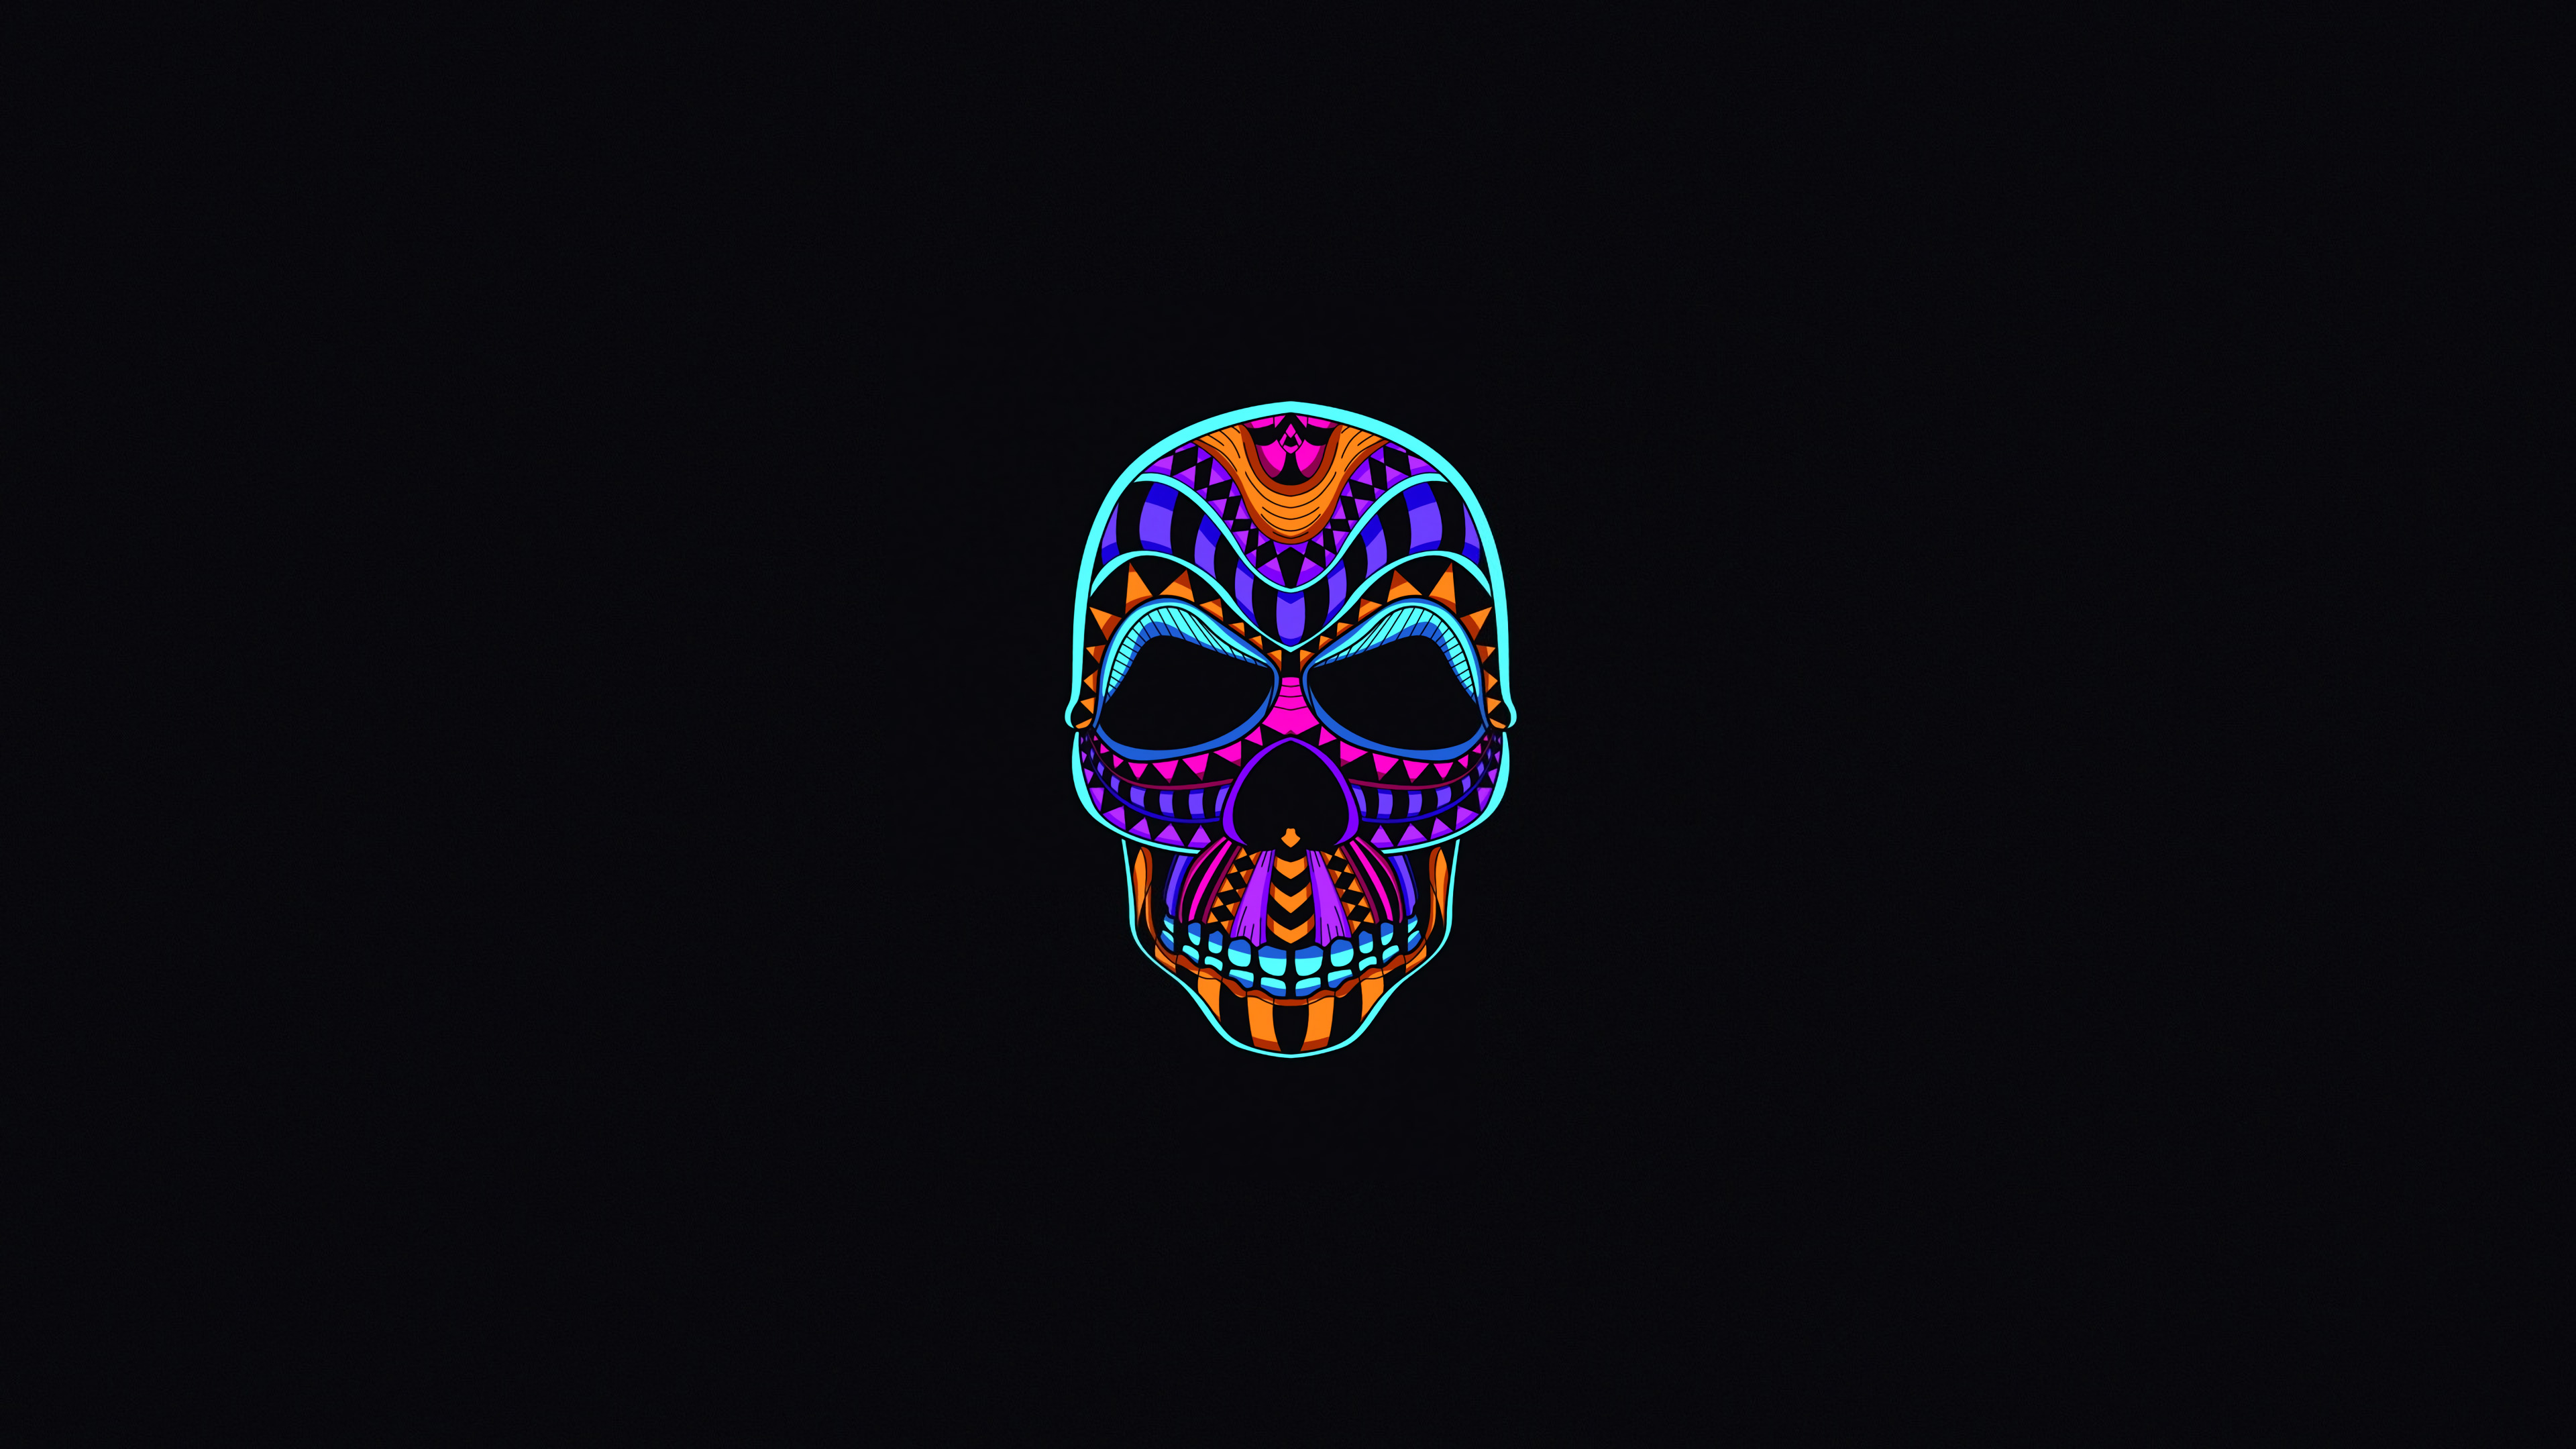 Wallpaper 4k Skull Dark Minimal 4k Wallpapers Black